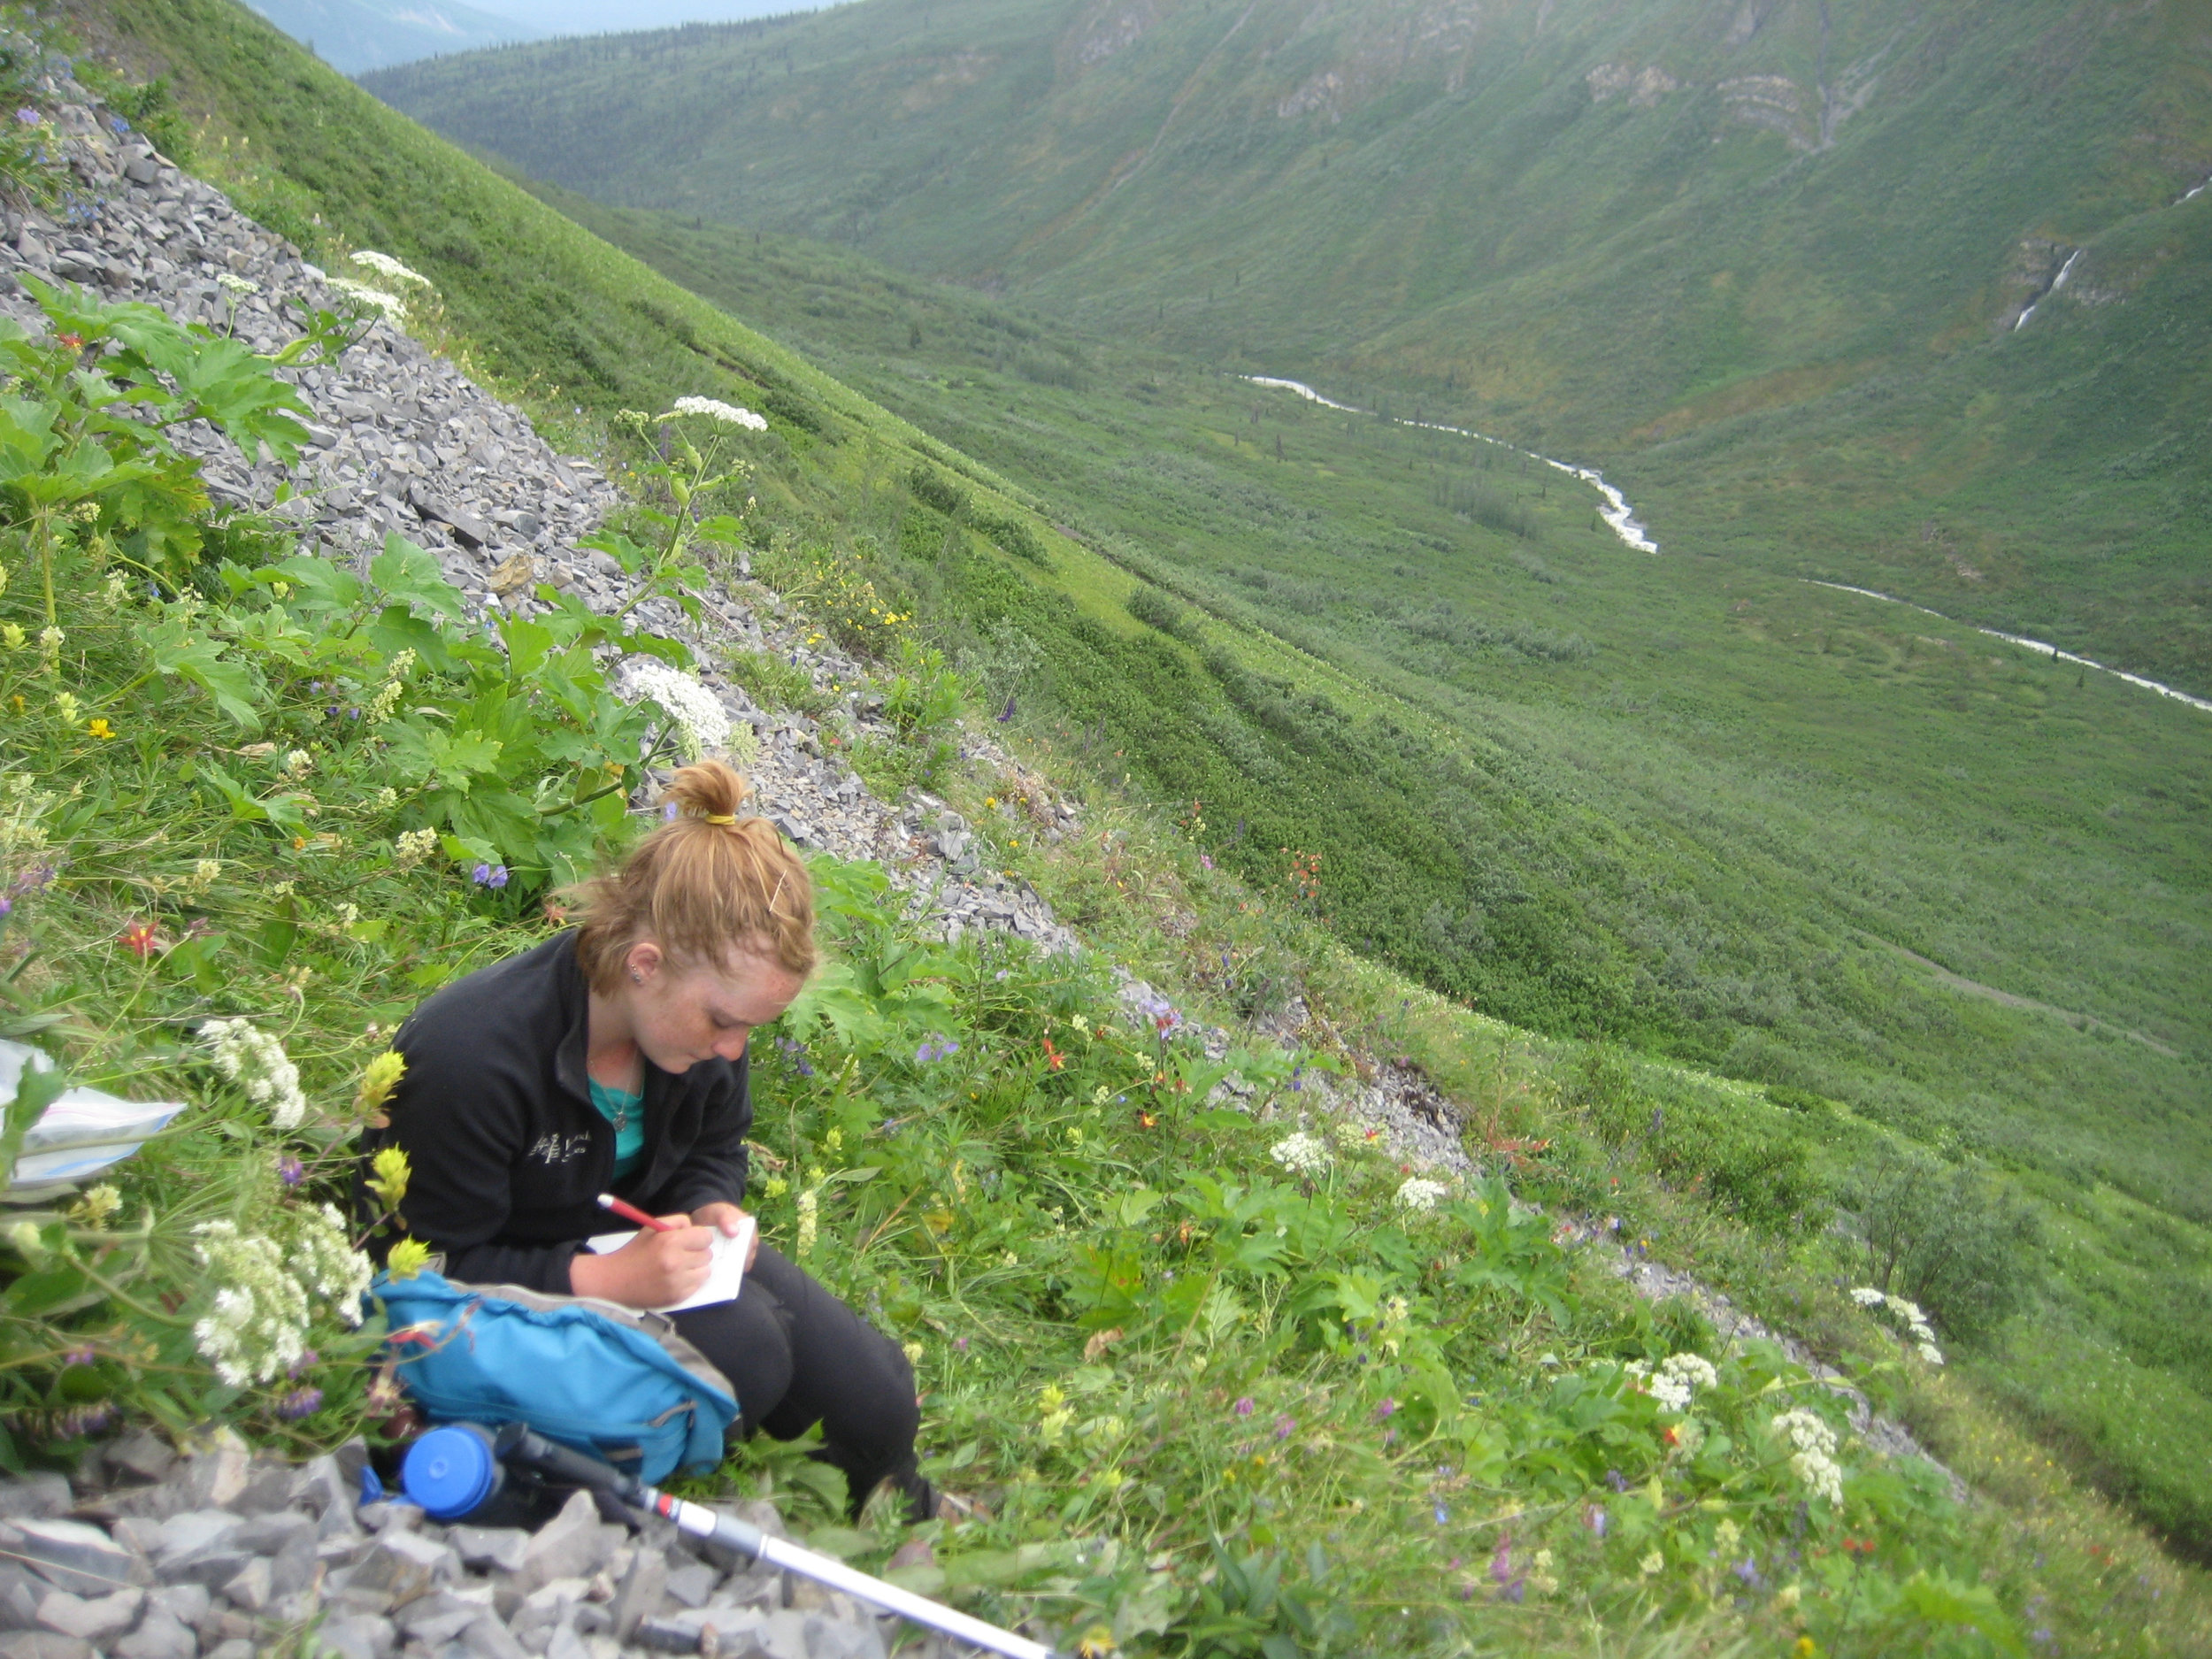 A student taking field notes on alpine vegetation in the Wrangell Mountains